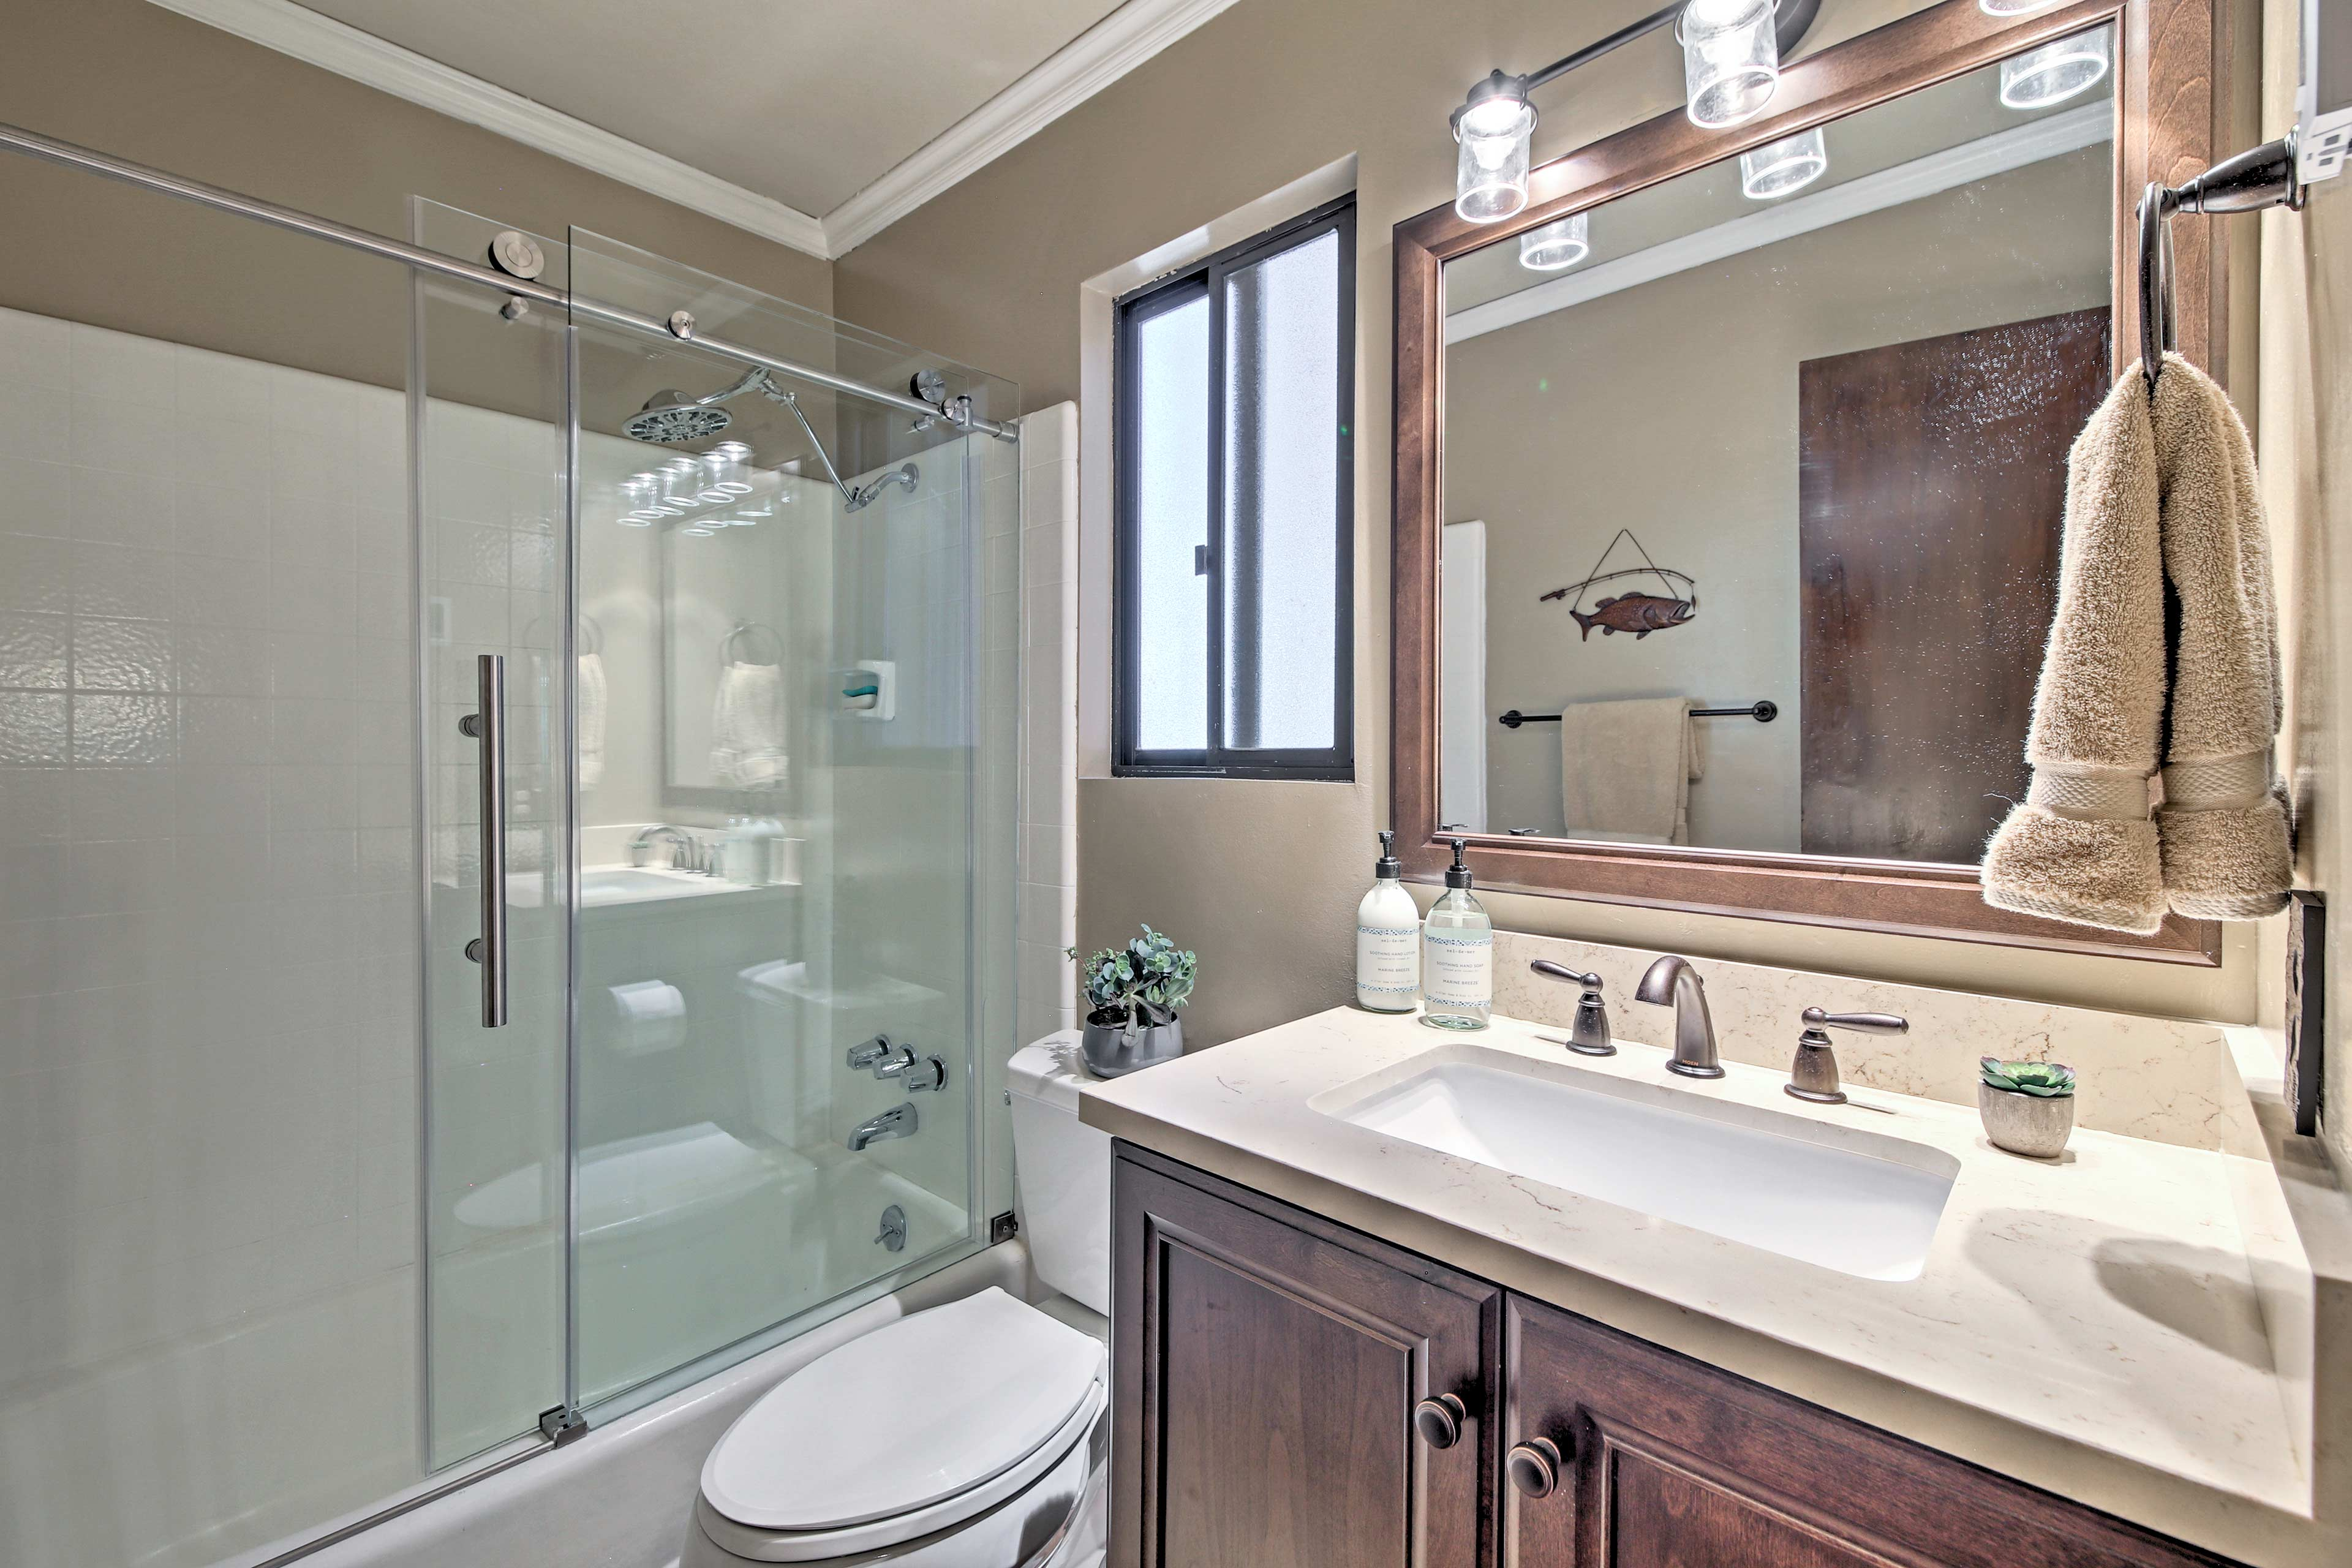 Wash off sand from the beach in the glass-enclosed shower/tub combo.